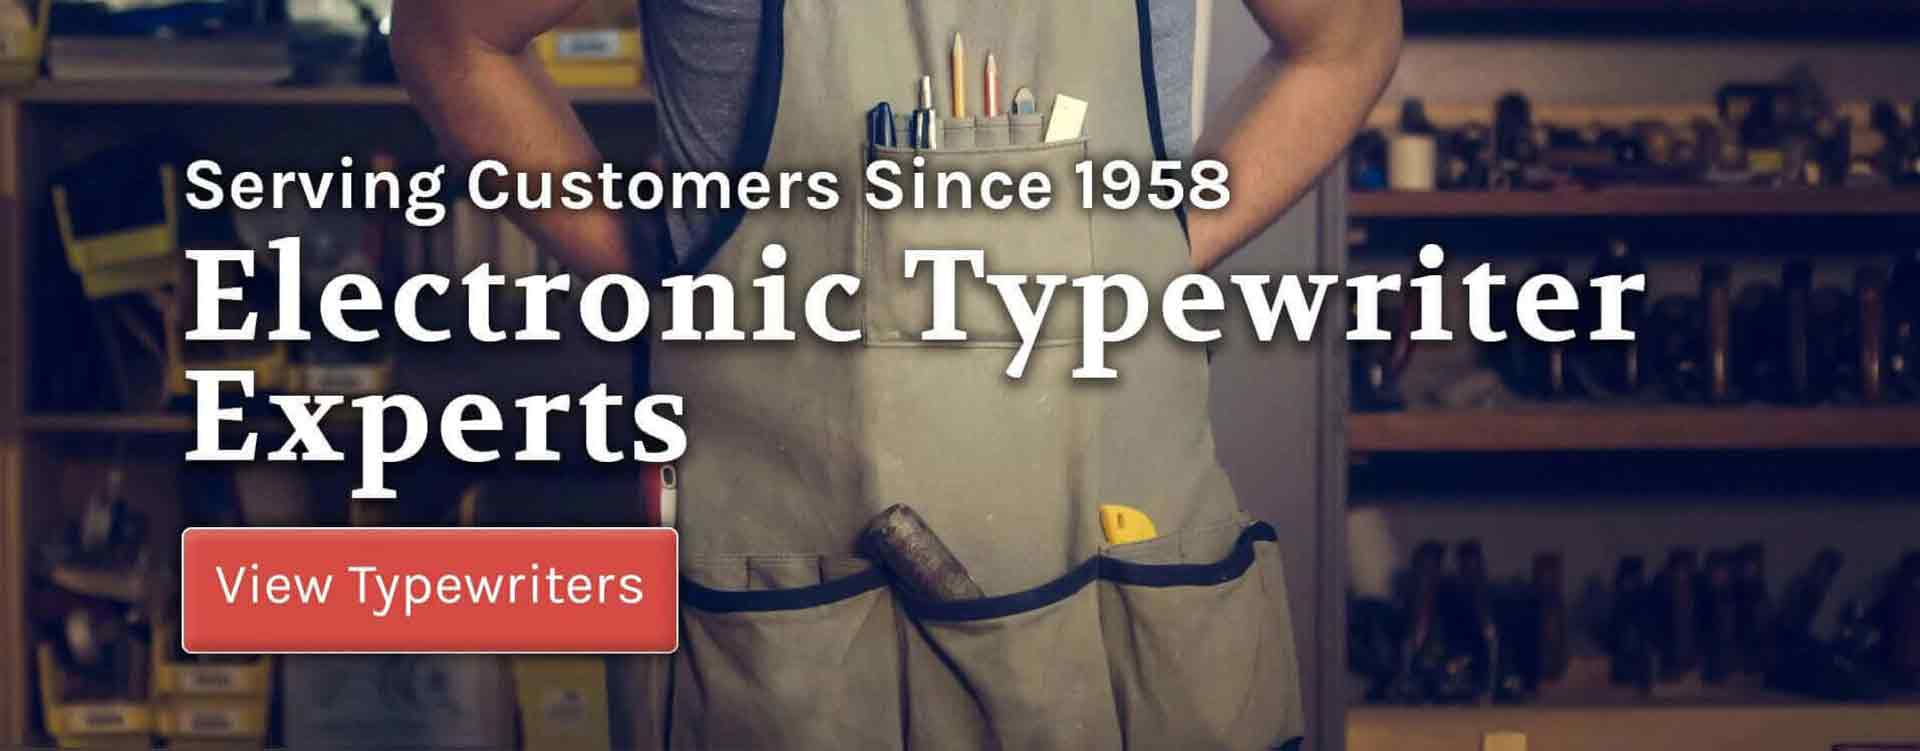 Serving Customers Since 1958, We are Electronic Typewriter Experts, Click to View Typewriters